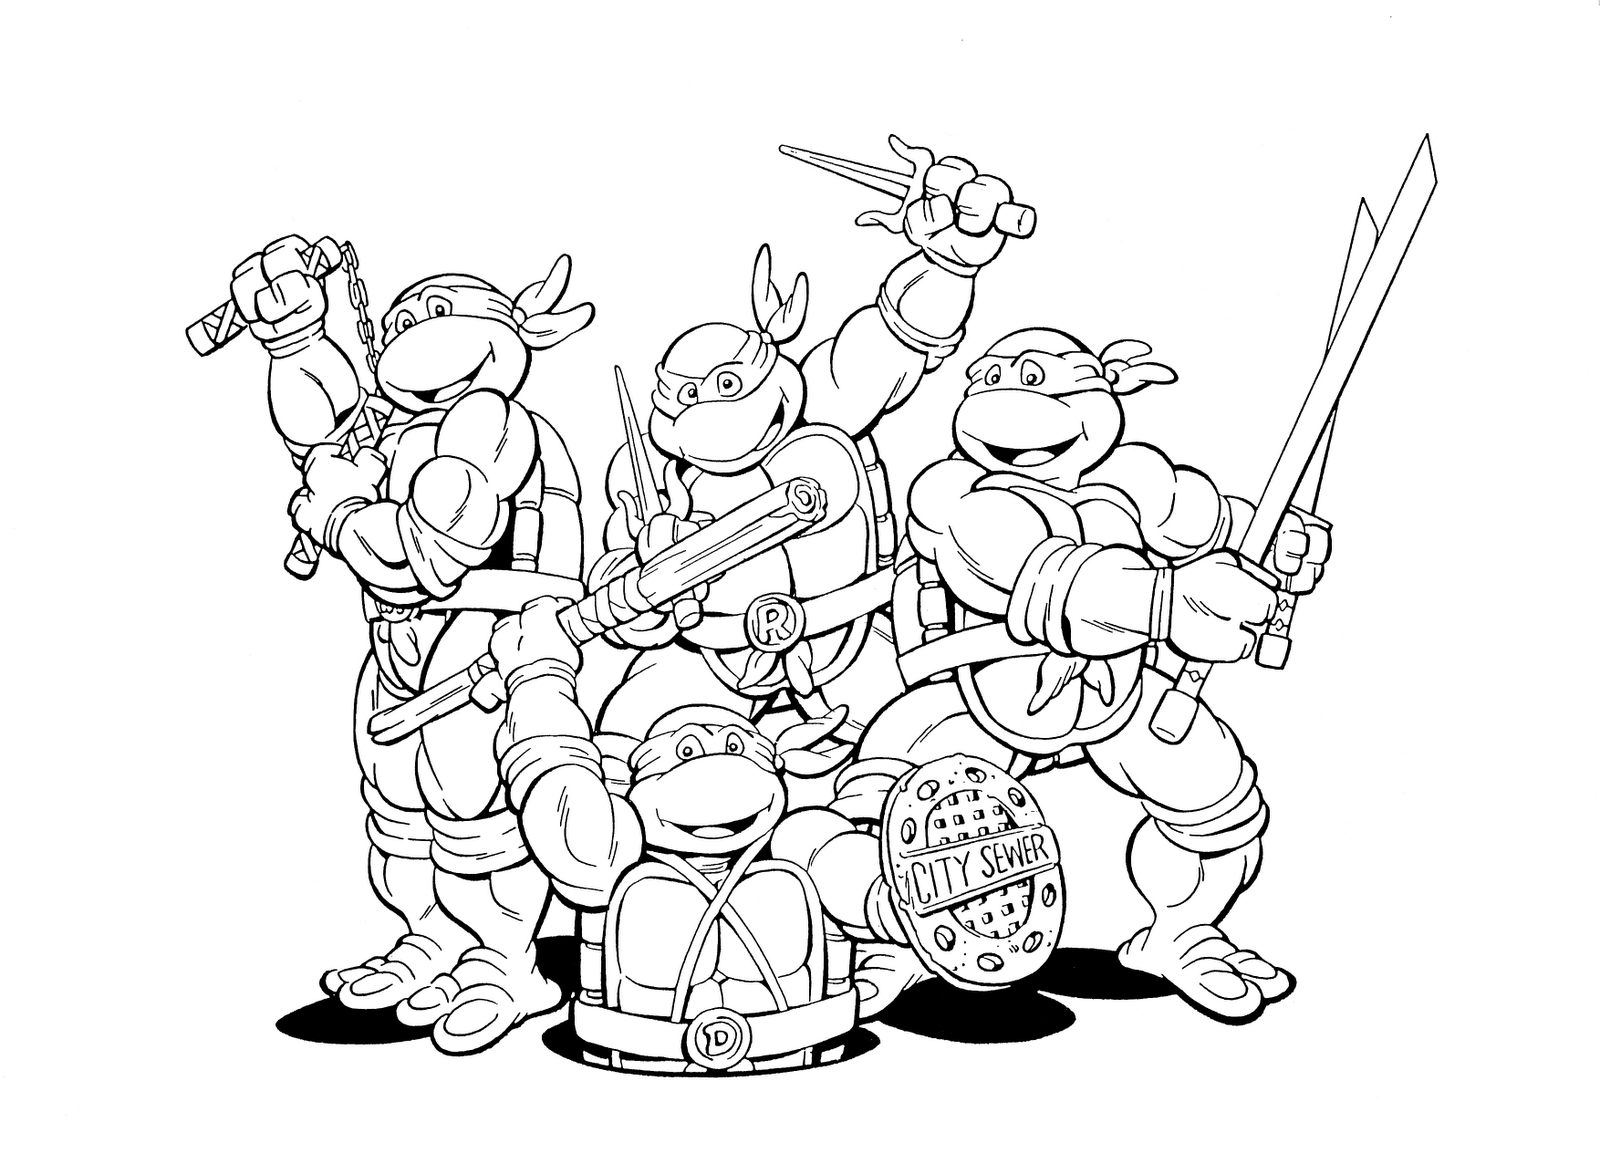 pictures of ninja turtles to color turtle best eat pizza coloring page teenage mutant turtles to ninja of pictures color